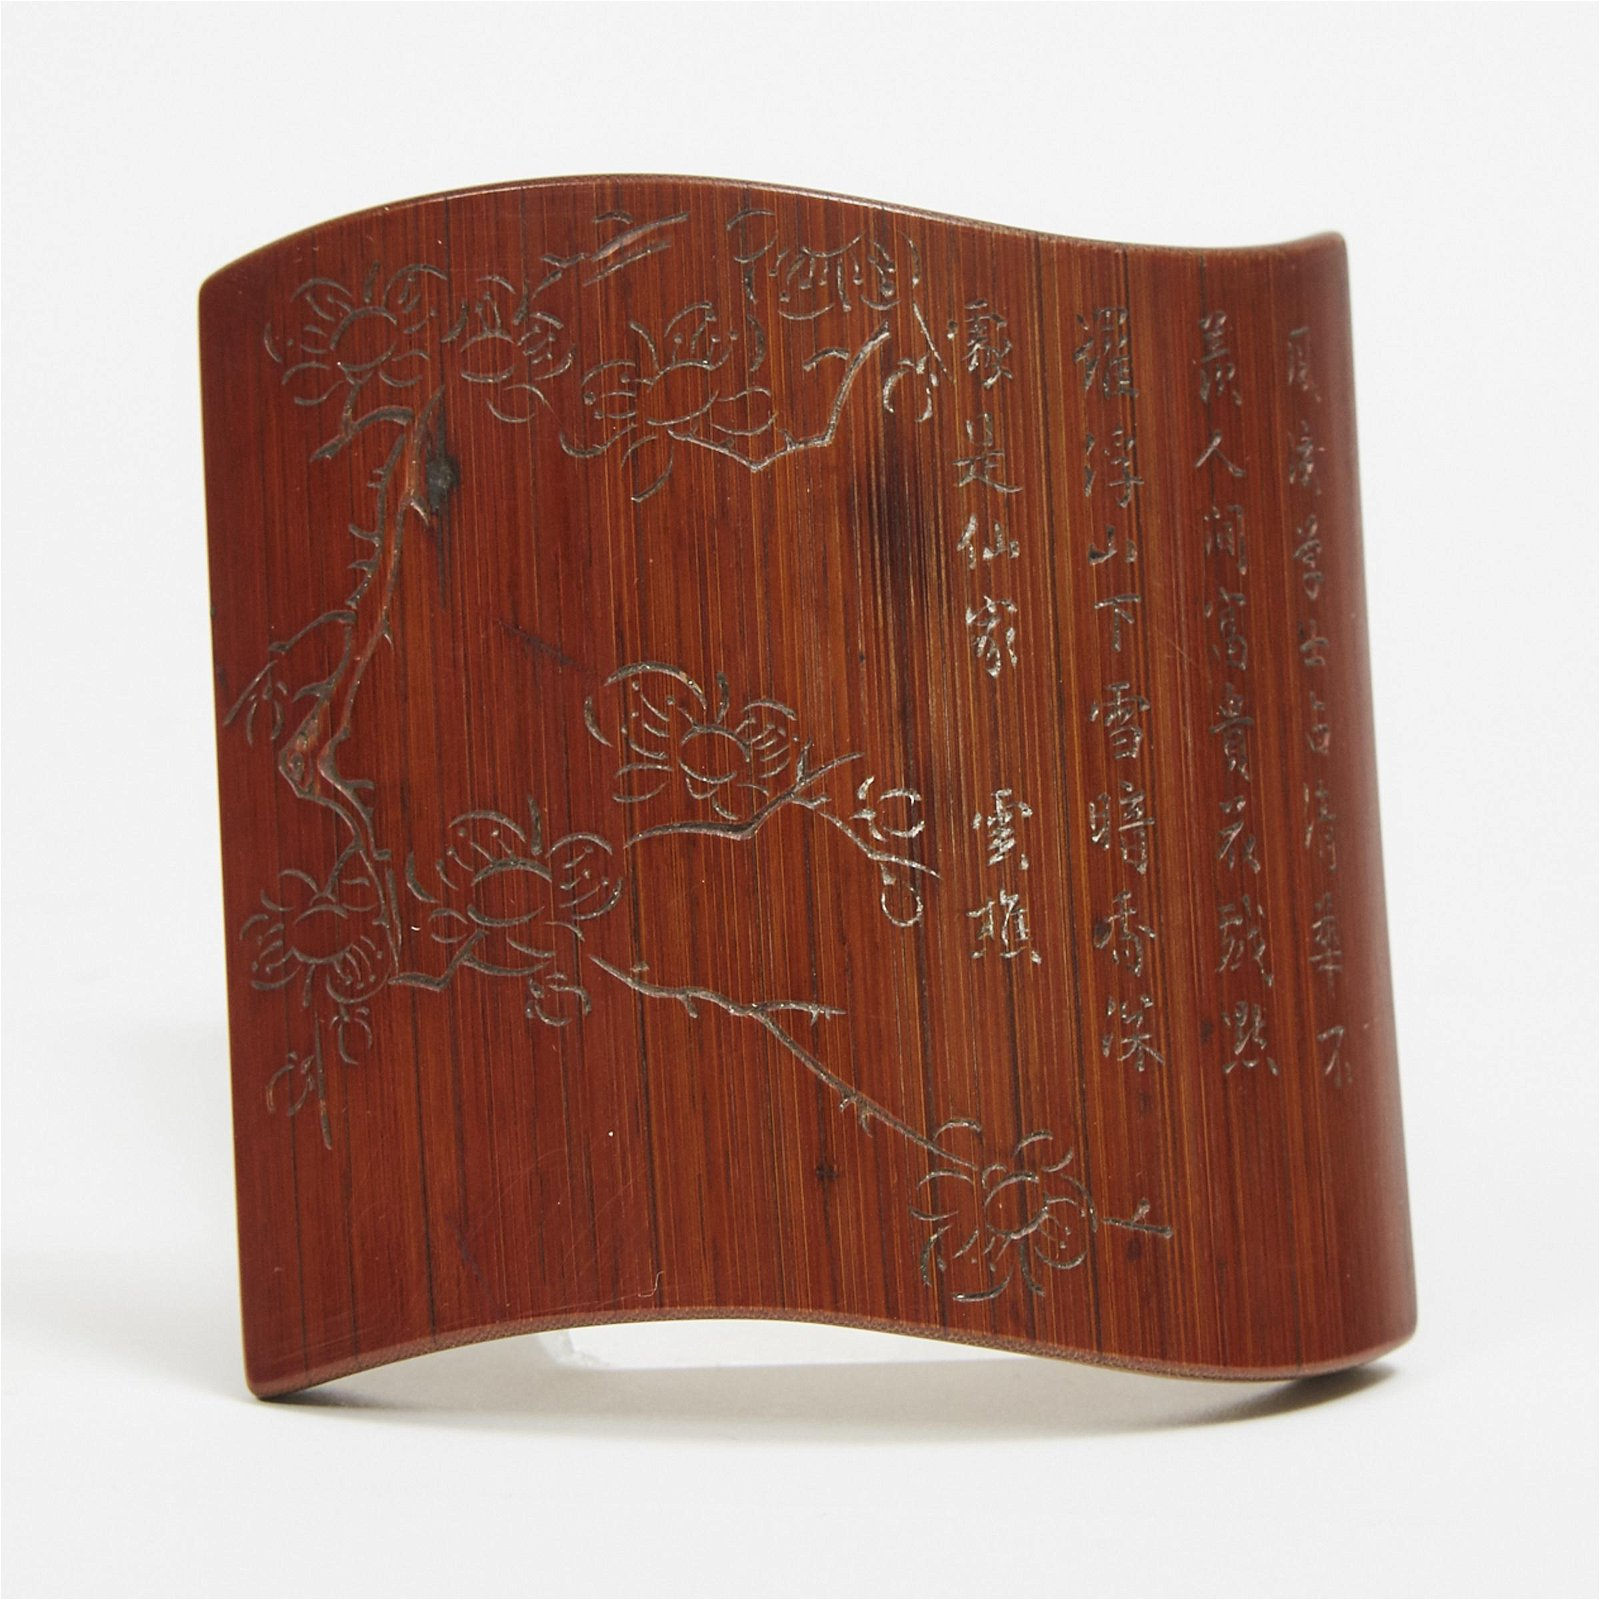 An Incised Bamboo Wrist Rest, Signed Dengwei